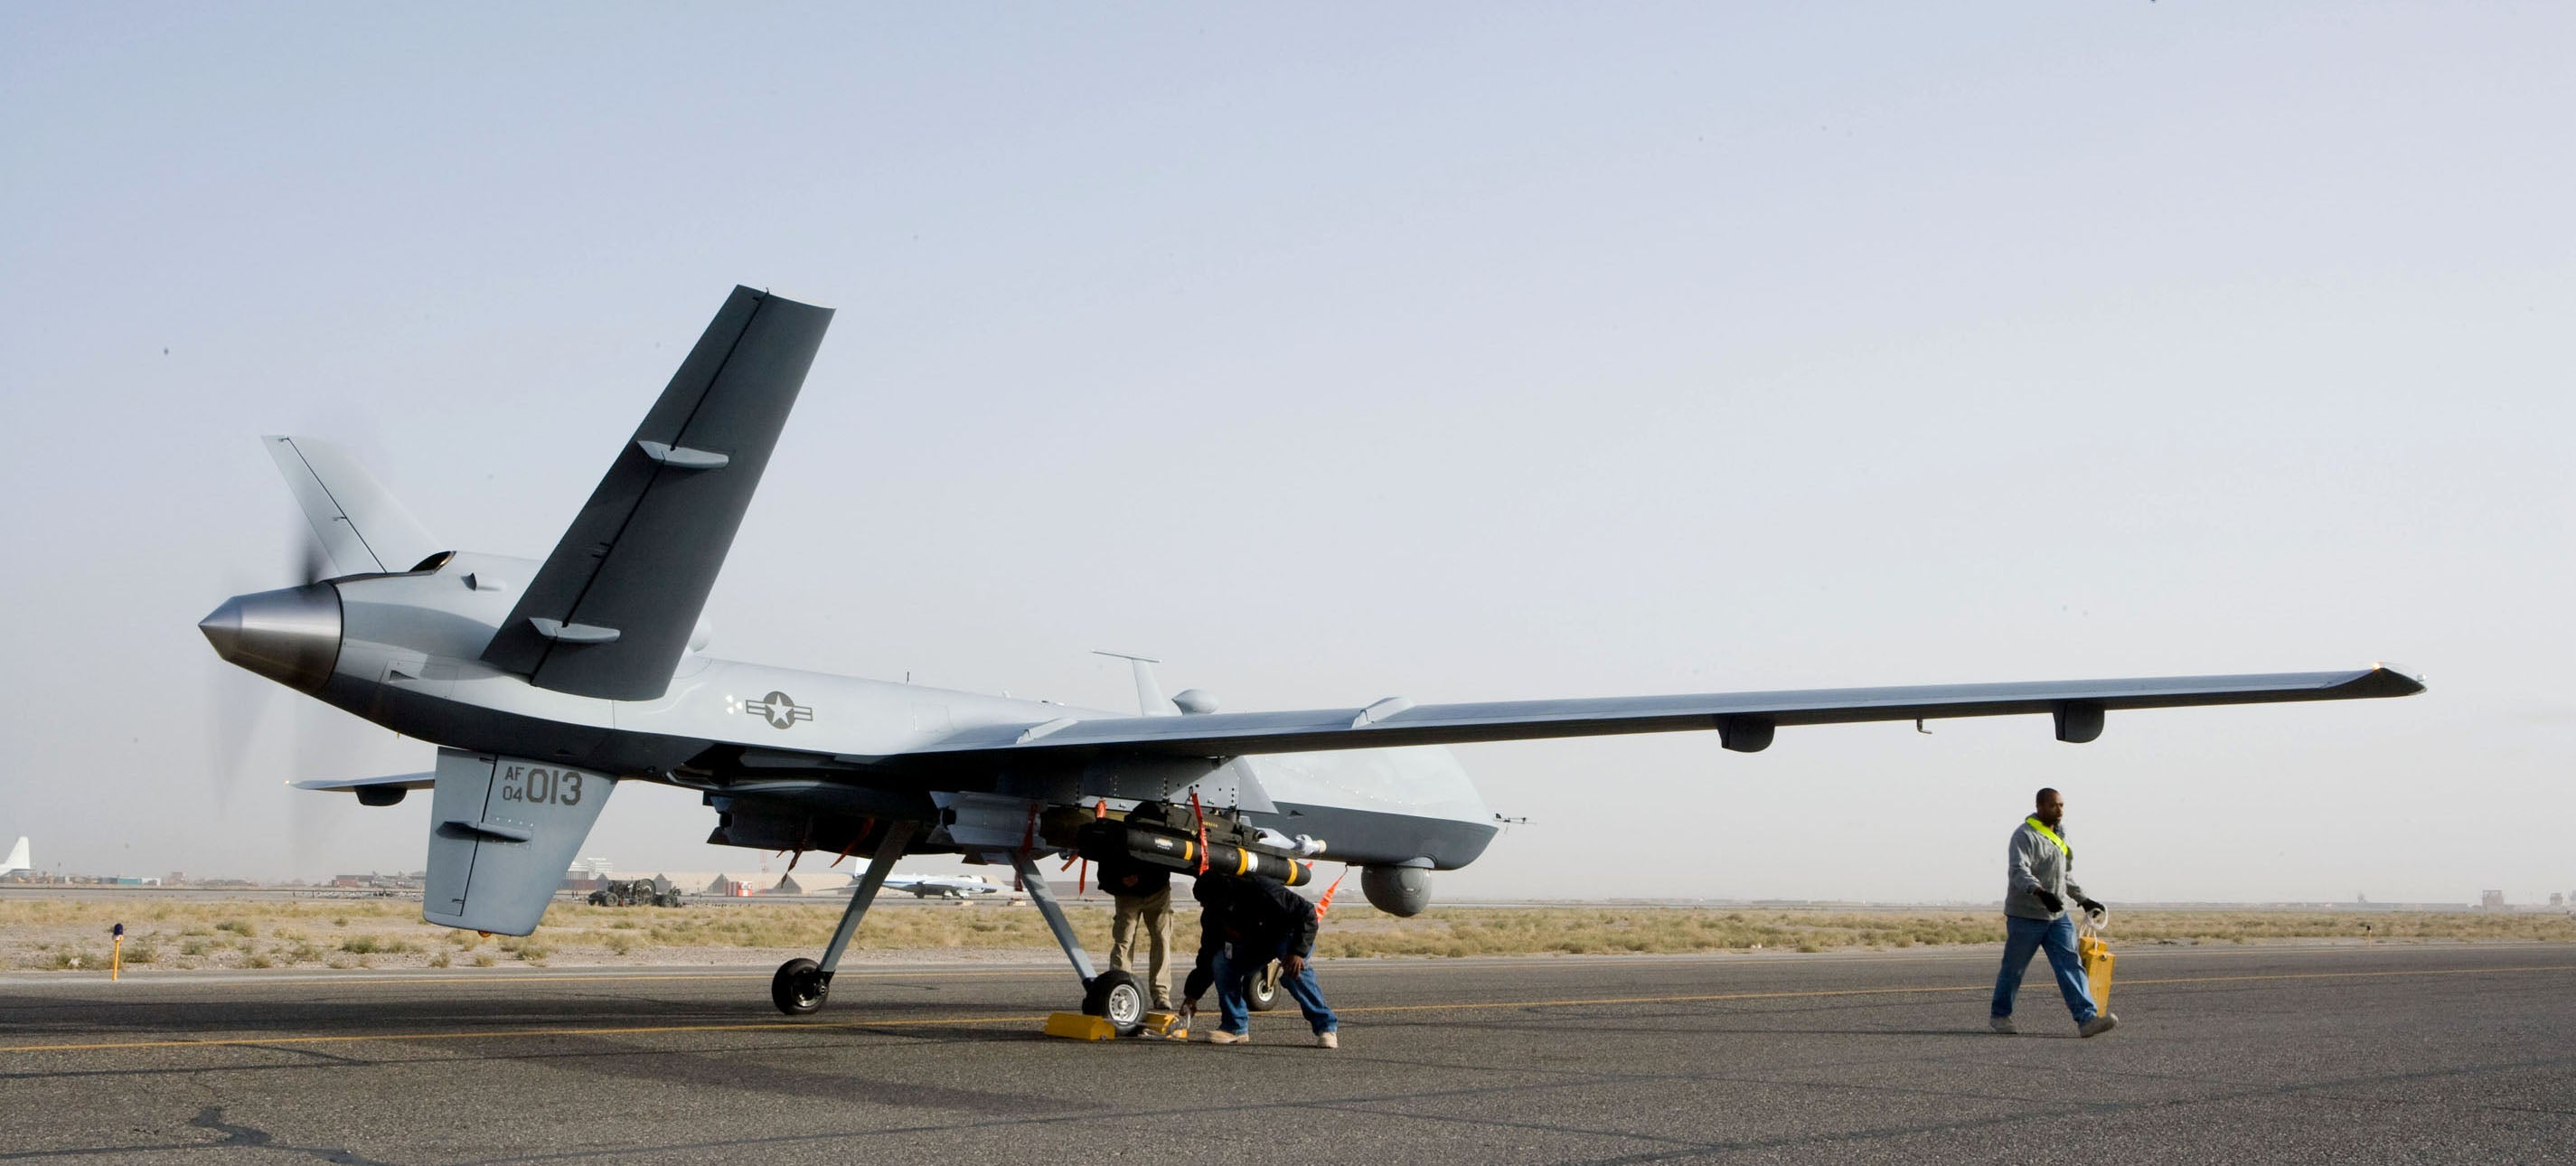 Military Drones Have Been Used for Non-Military Surveillance Above the US